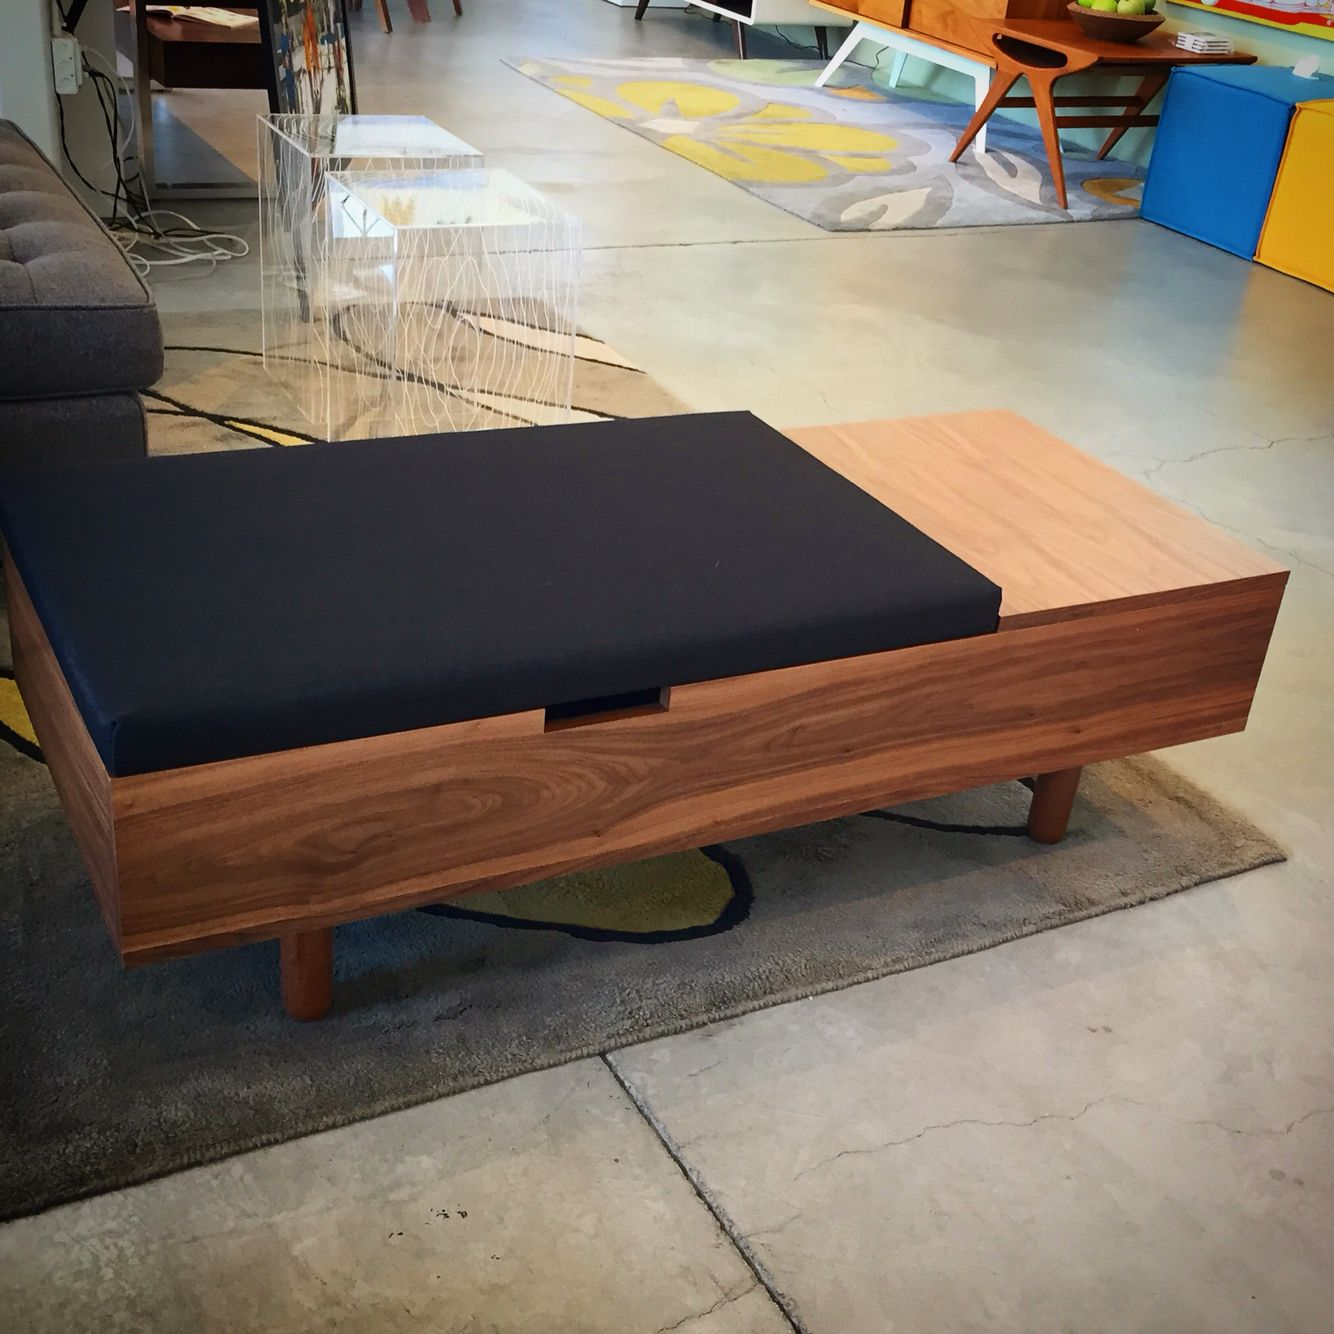 Peachy Loving The New Mimico Storage Ottoman By Gus Modern Gus Pabps2019 Chair Design Images Pabps2019Com